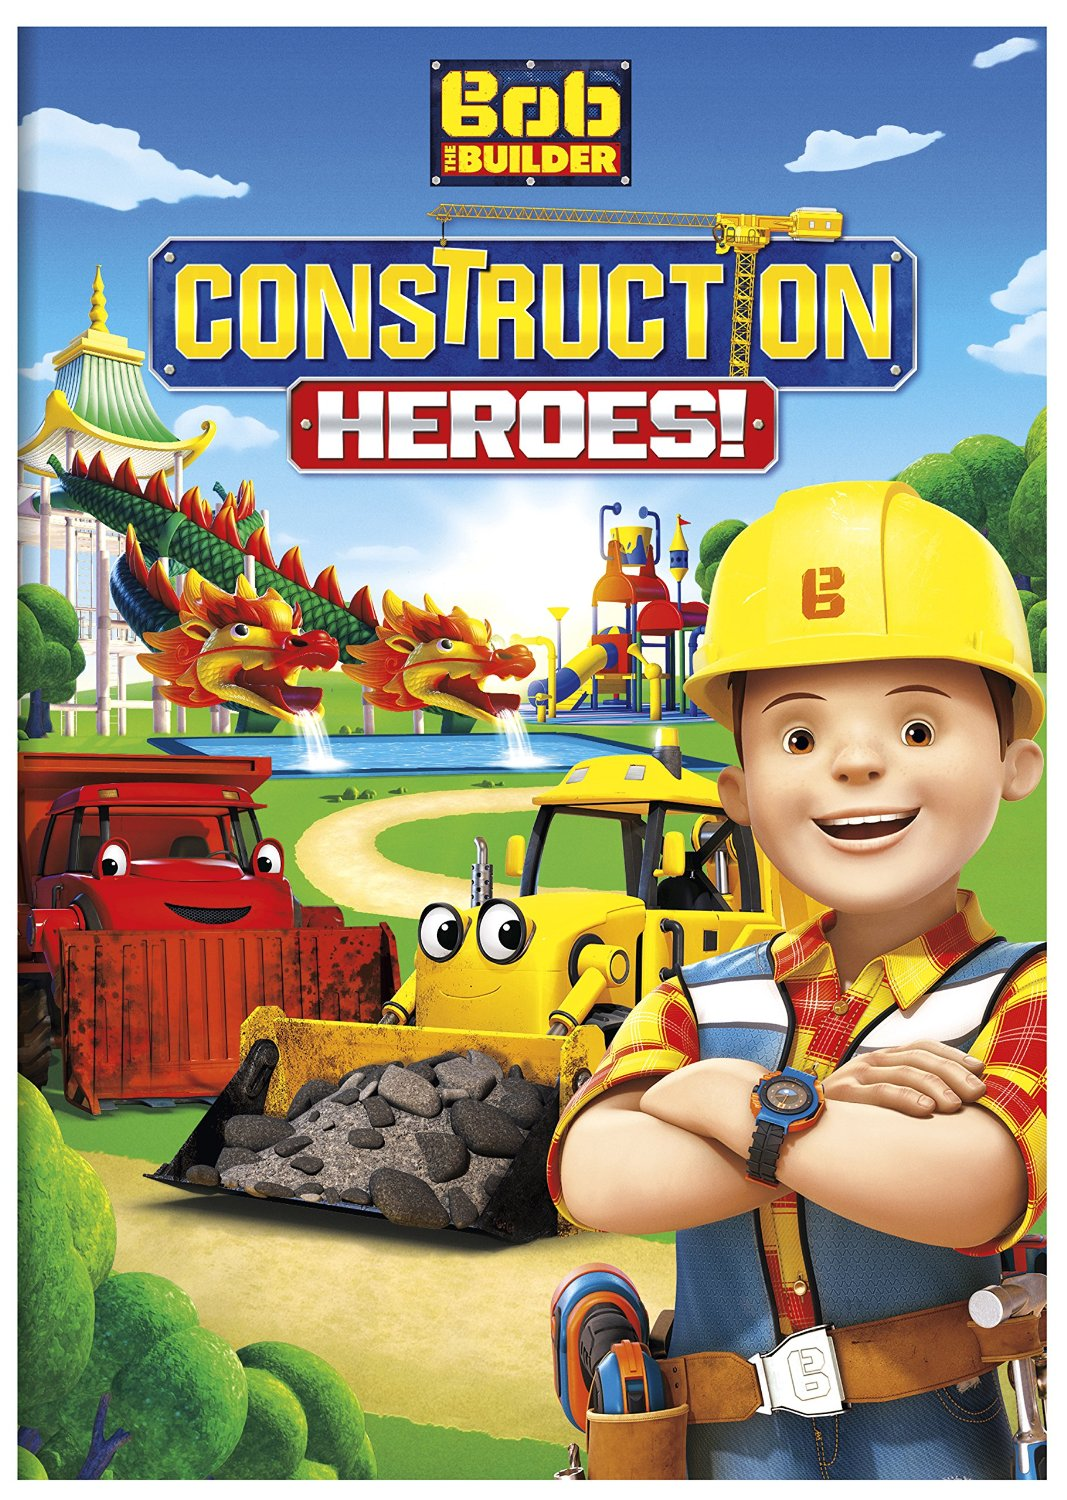 Bob The Builder: Construction Heroes DVD Review